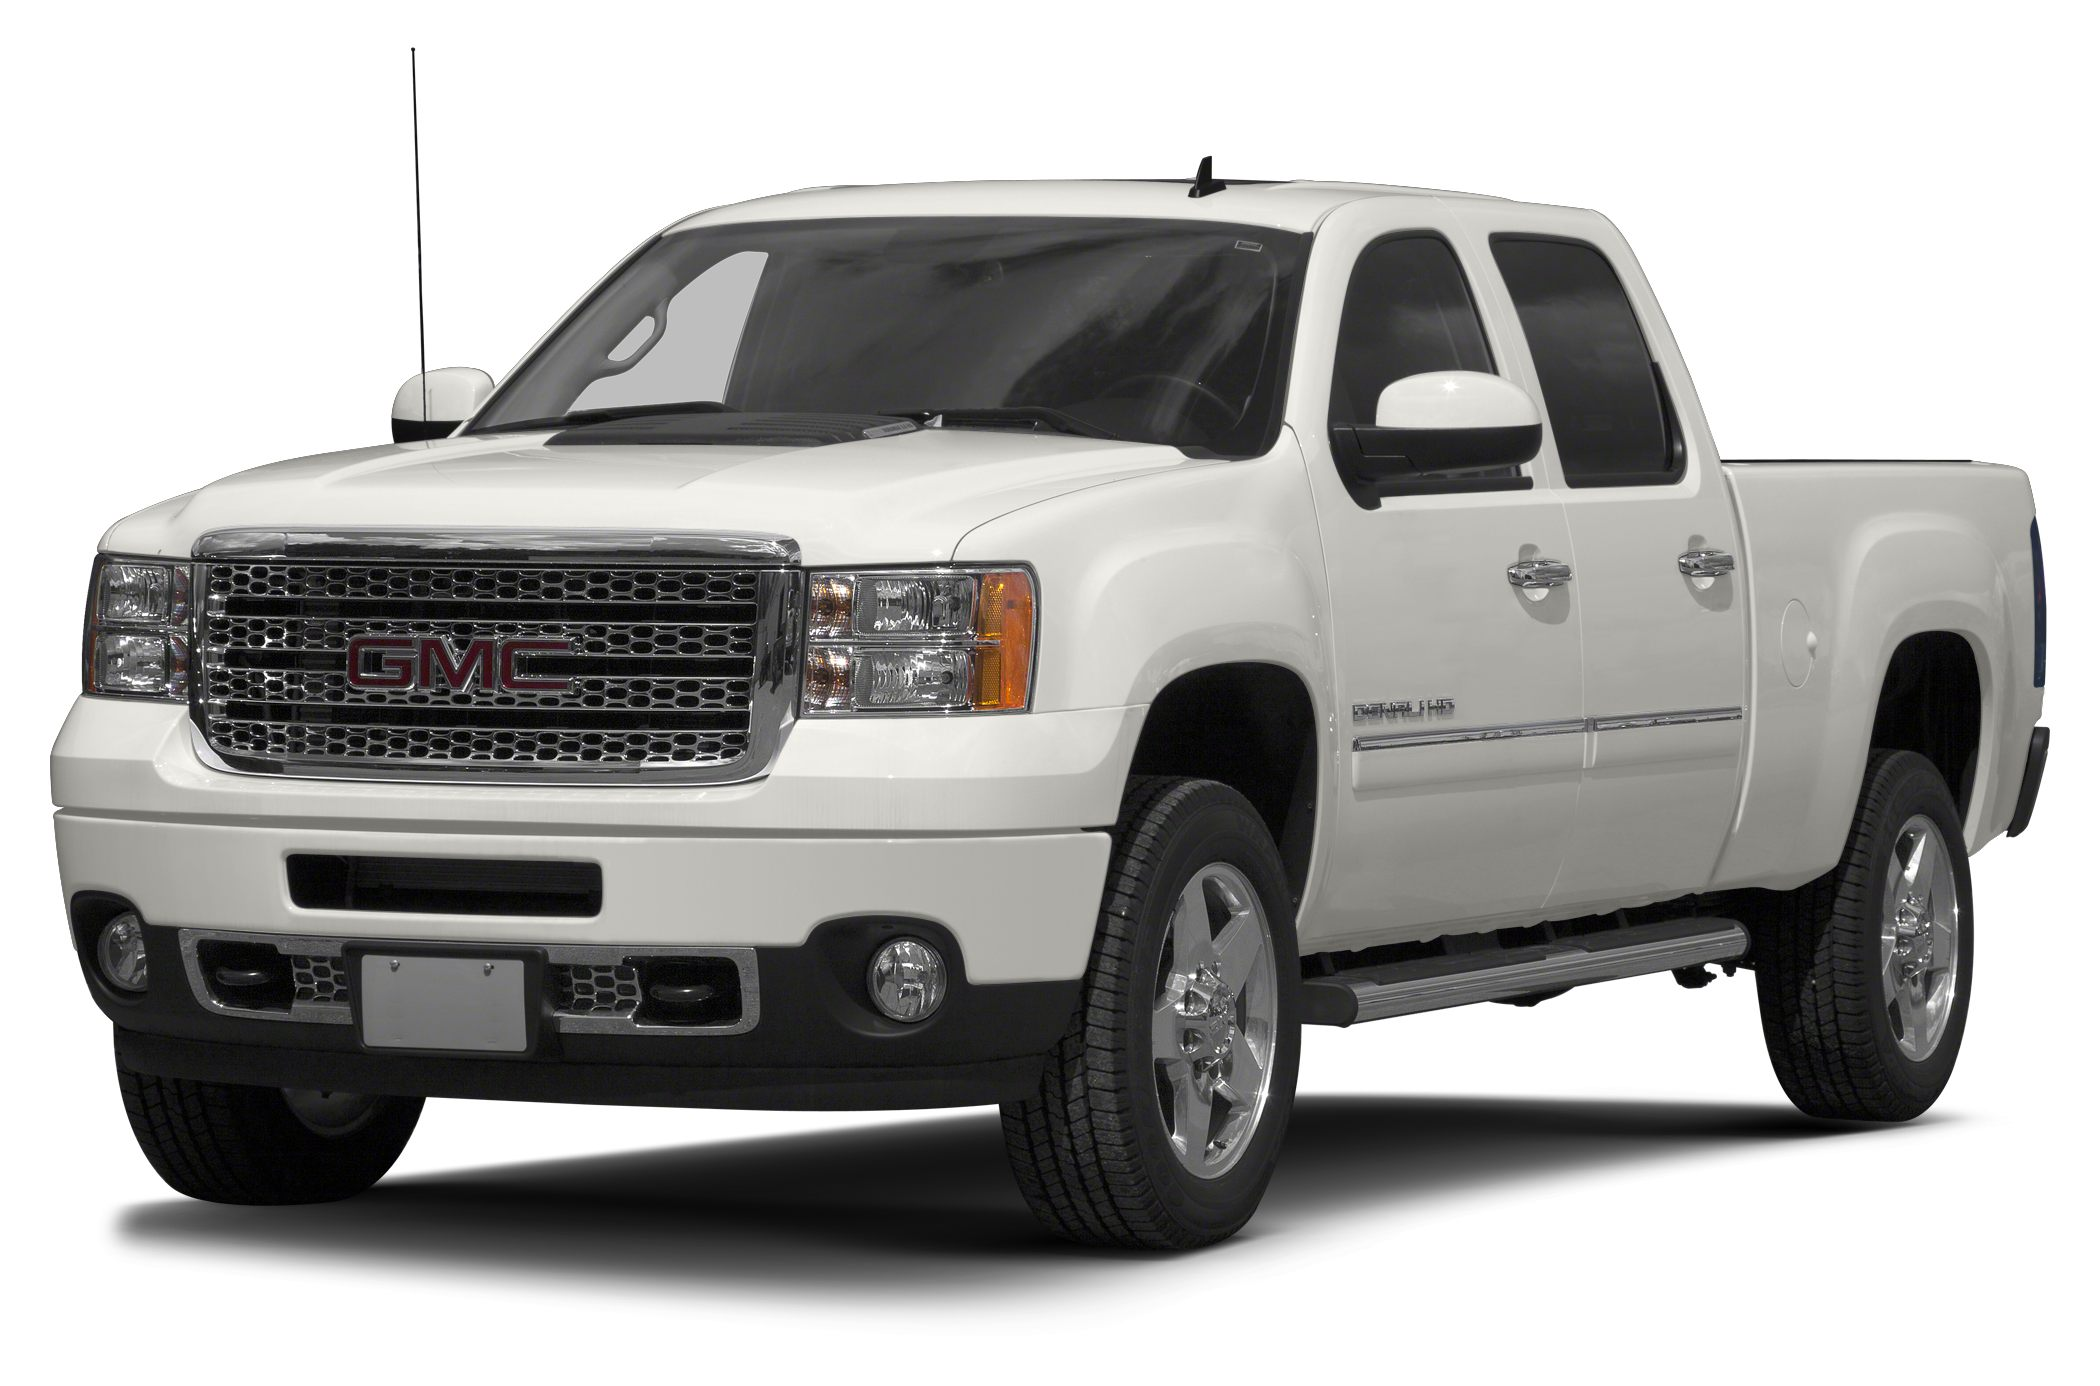 2013 GMC Sierra 3500 Denali Crew Cab Pickup for sale in Murphy for $51,605 with 12,694 miles.